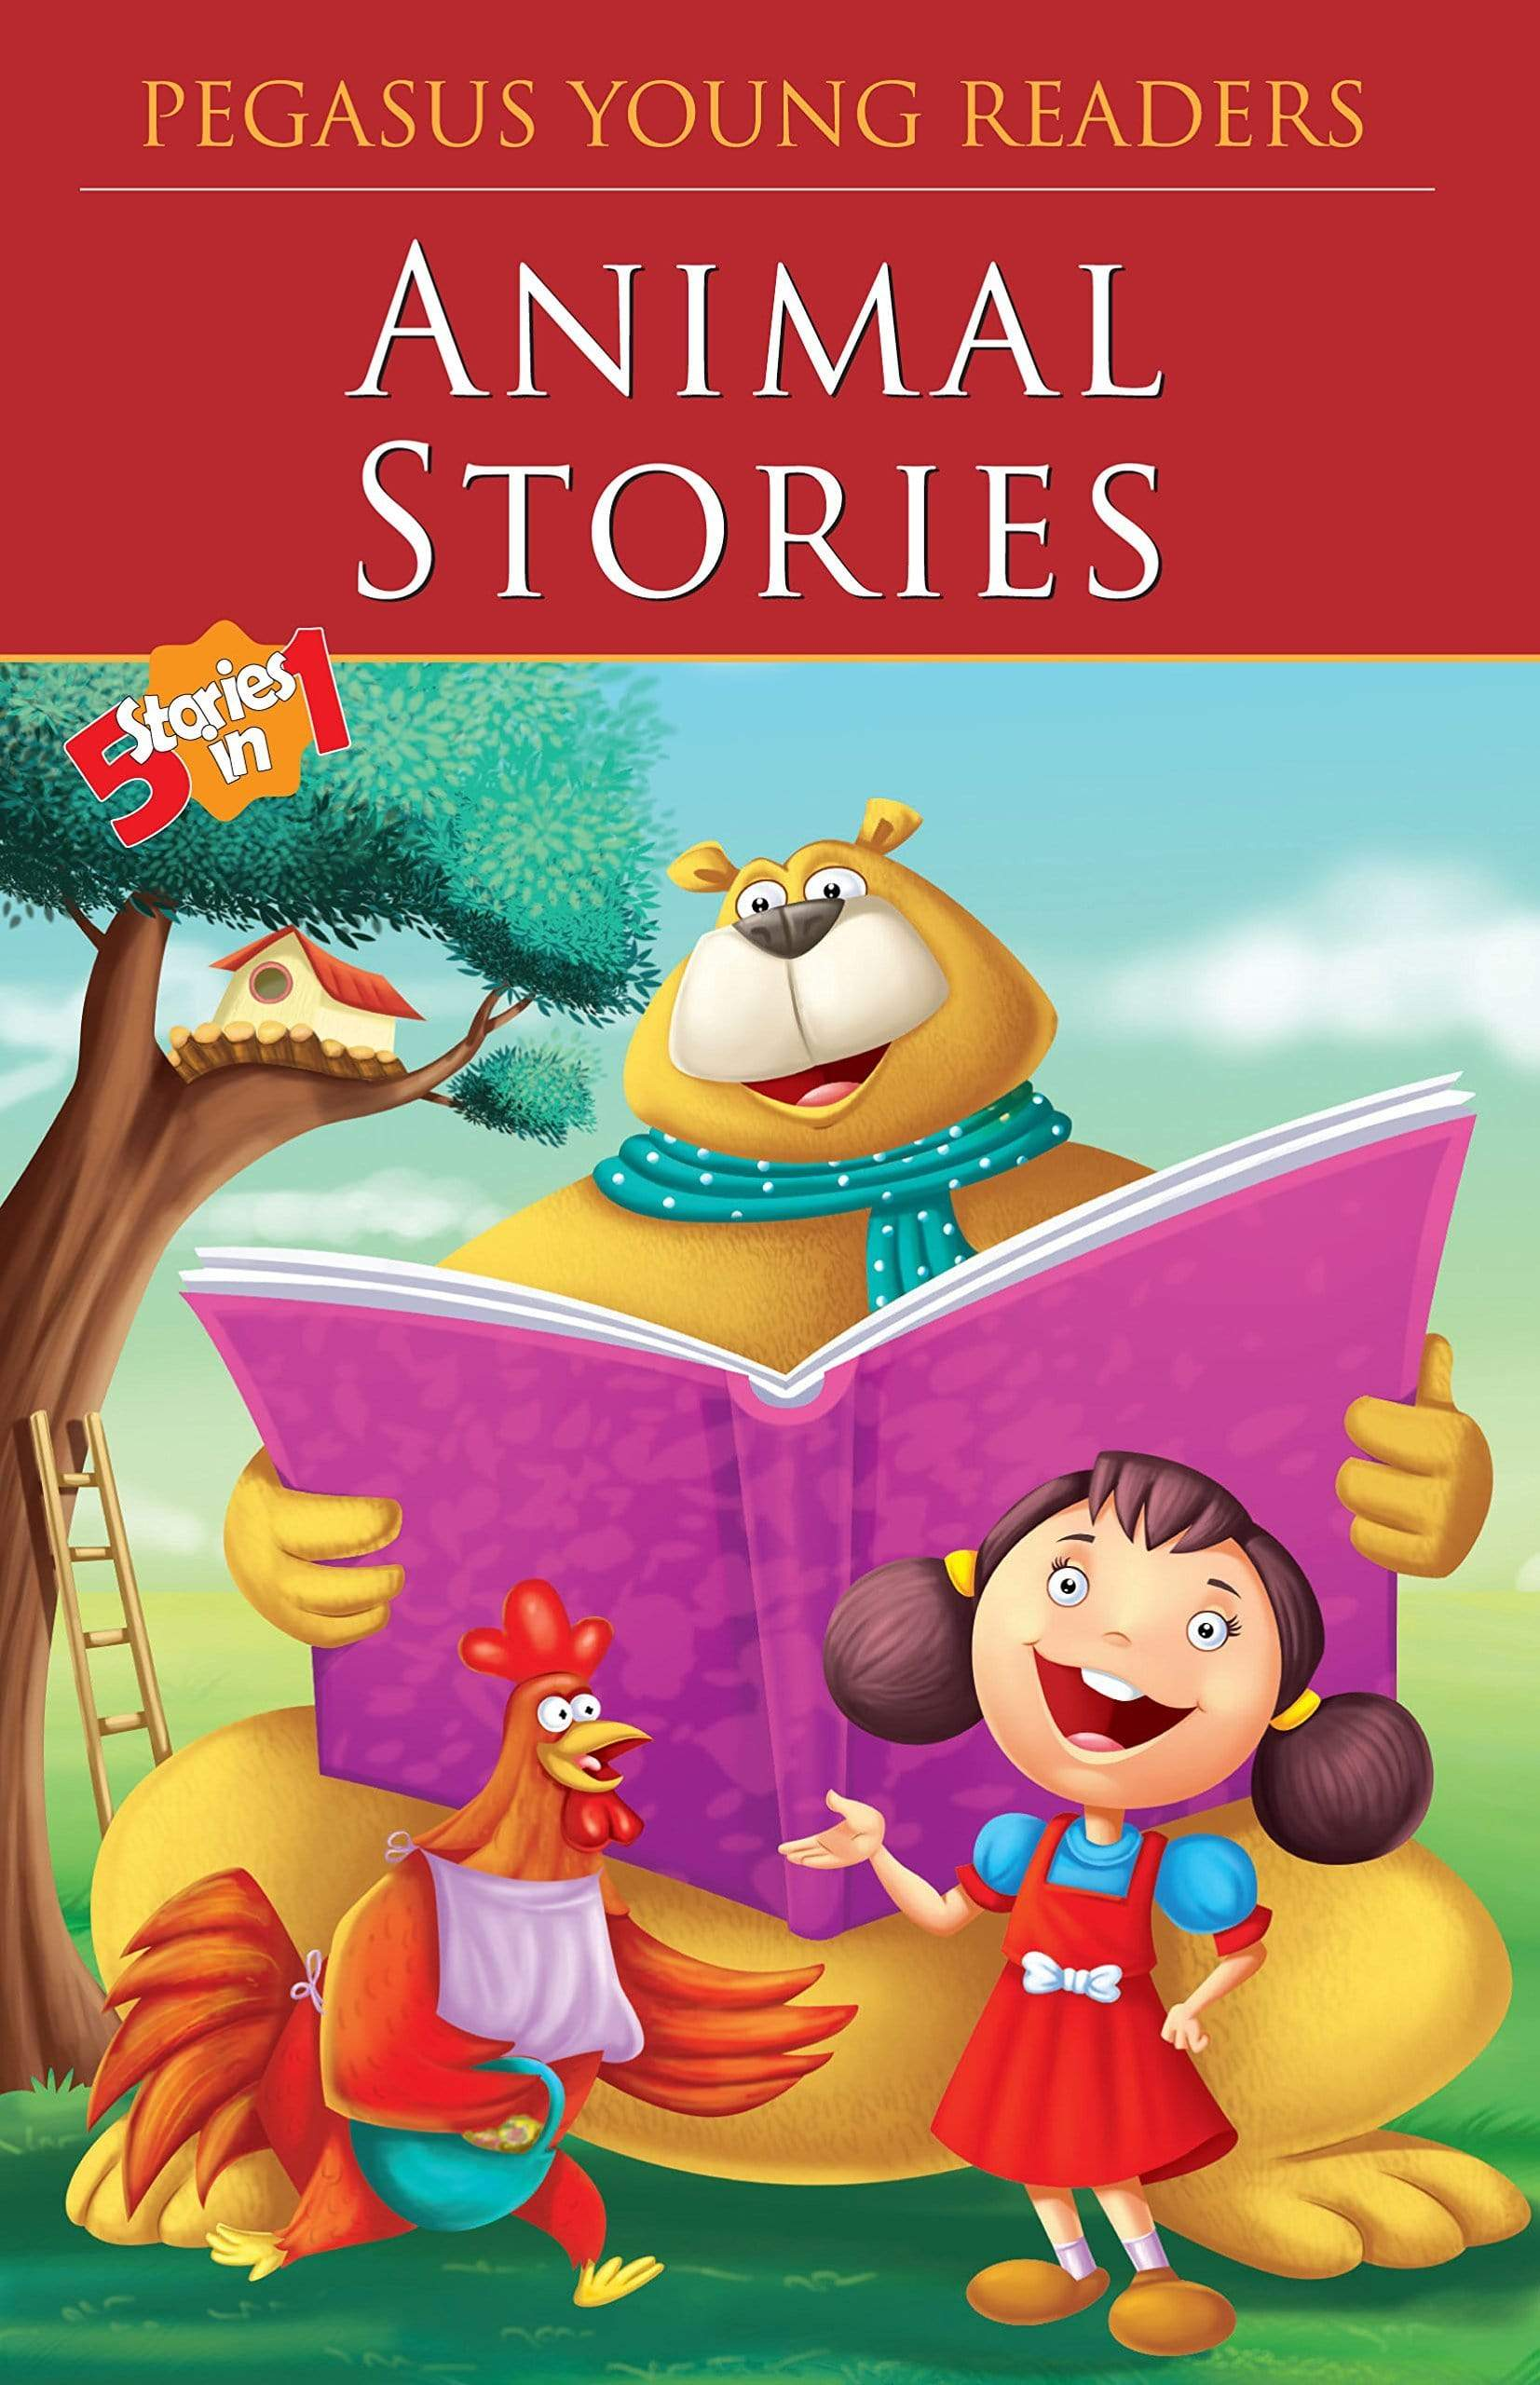 Buy Animal Stories book online at low prices in India | Bookish Santa Book Pegasus for Kids 8131917460